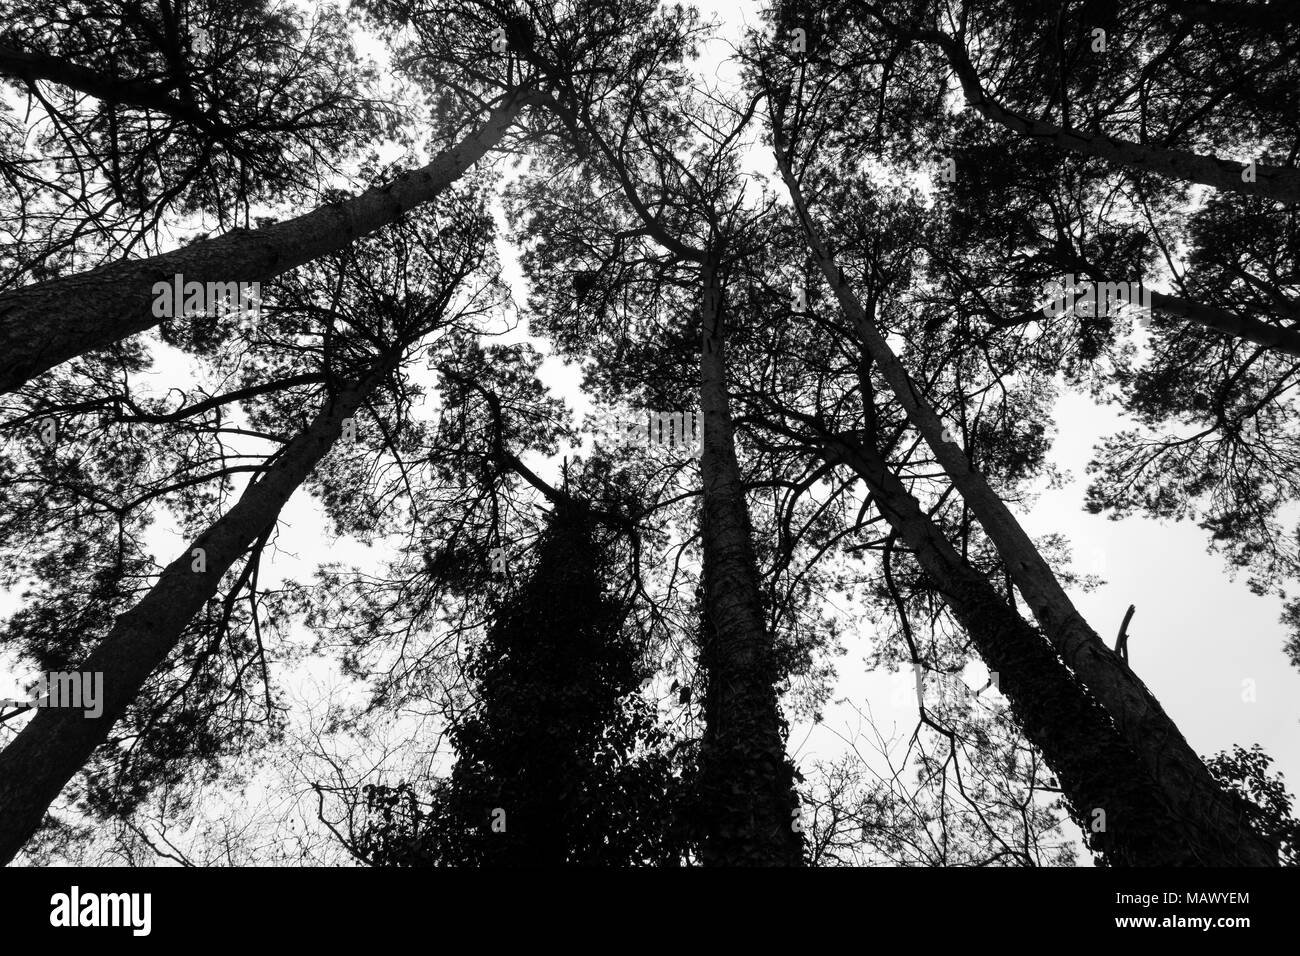 View of some silhouetted tall trees from below in monochrome - Stock Image